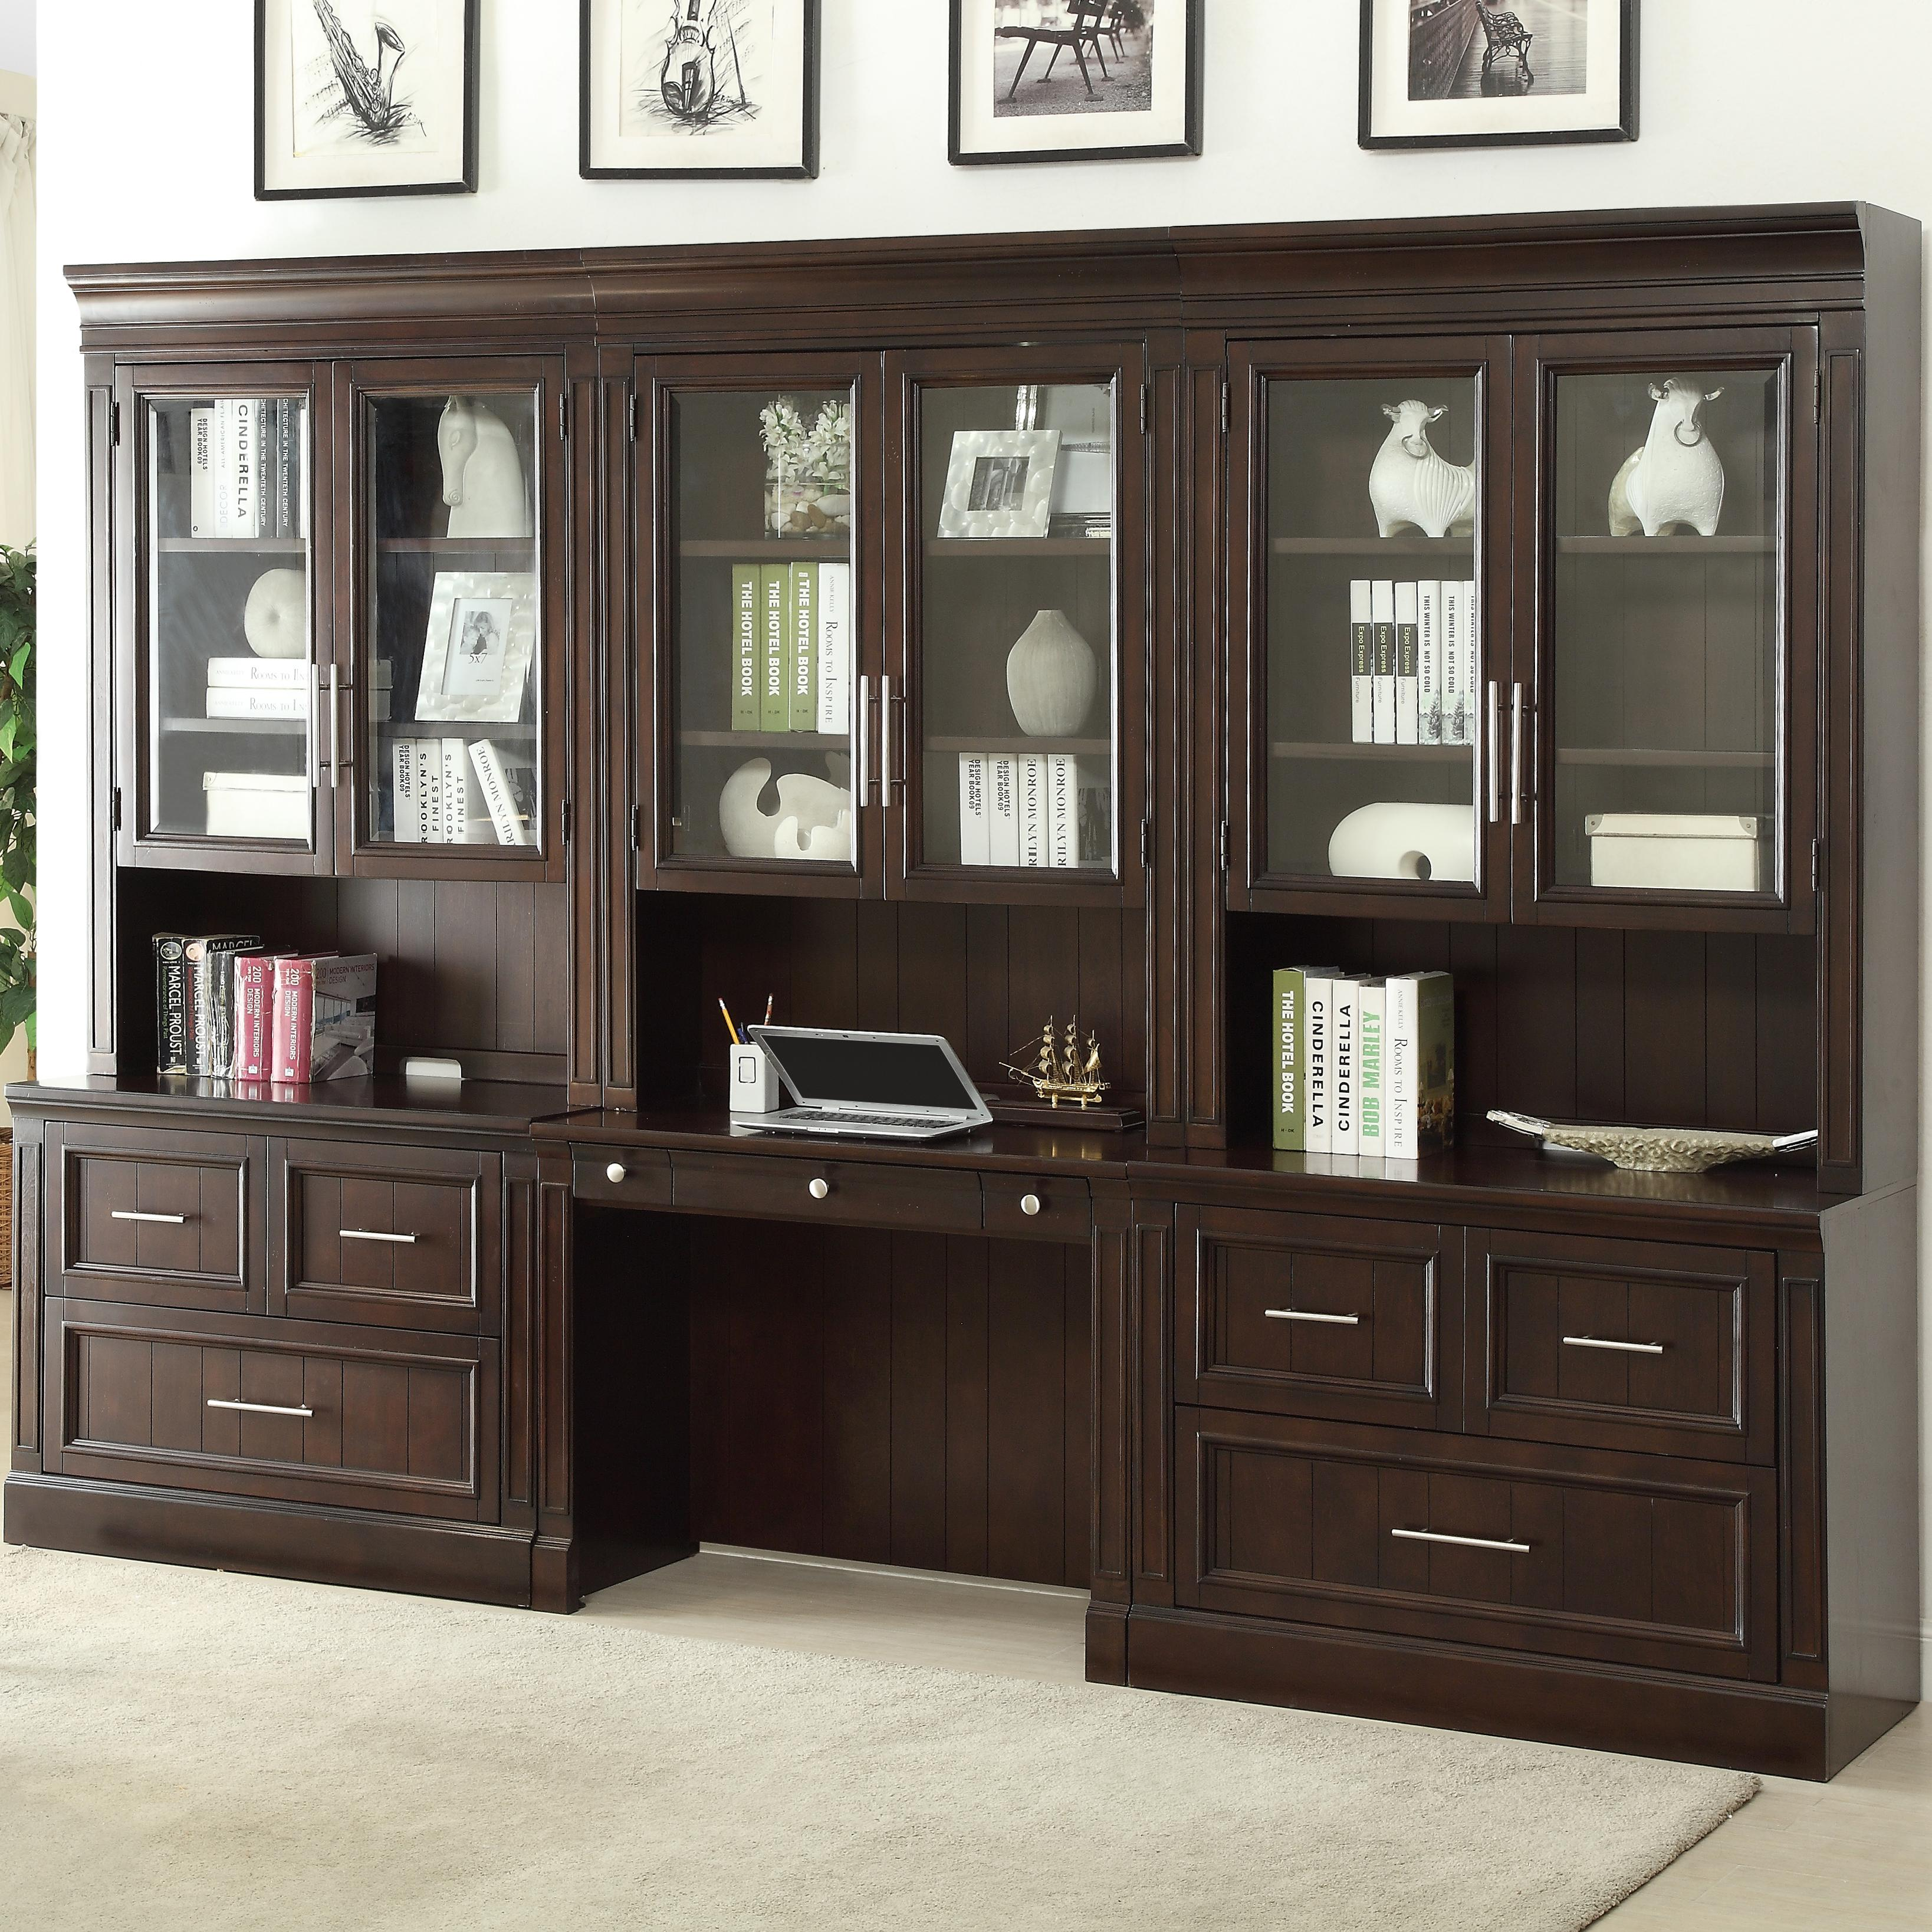 Parker House Stanford Wall Unit with Lateral Files and